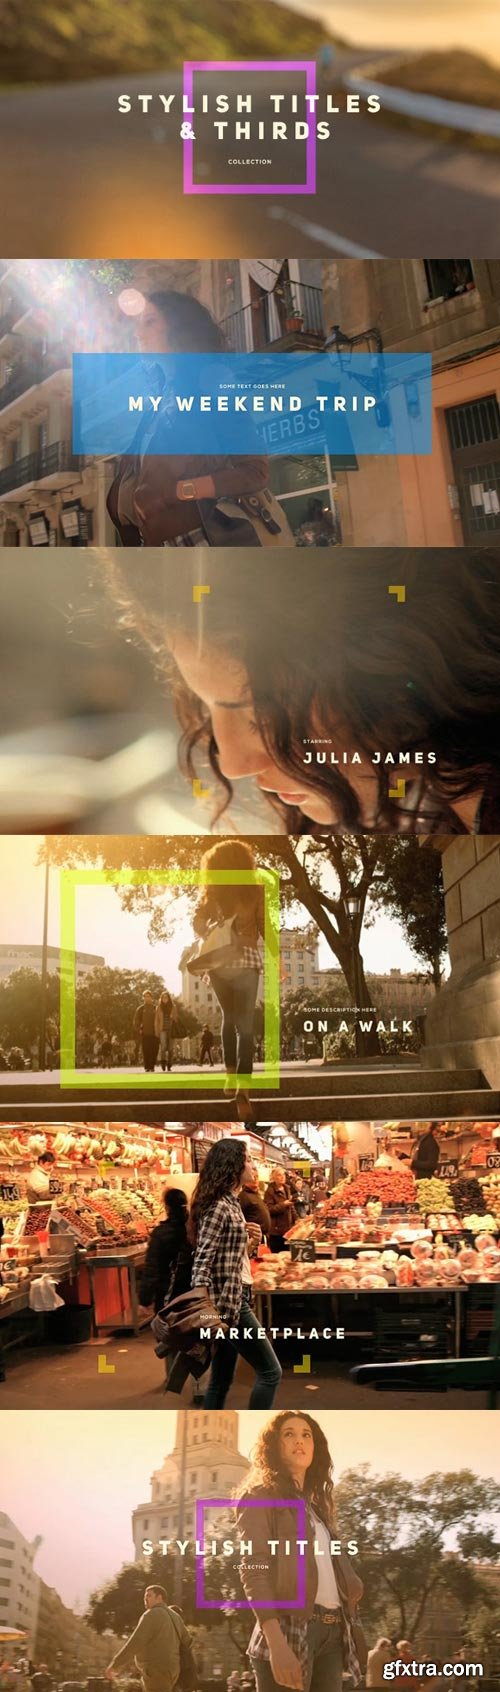 Videohive - Stylish Titles & Thirds - 12251144